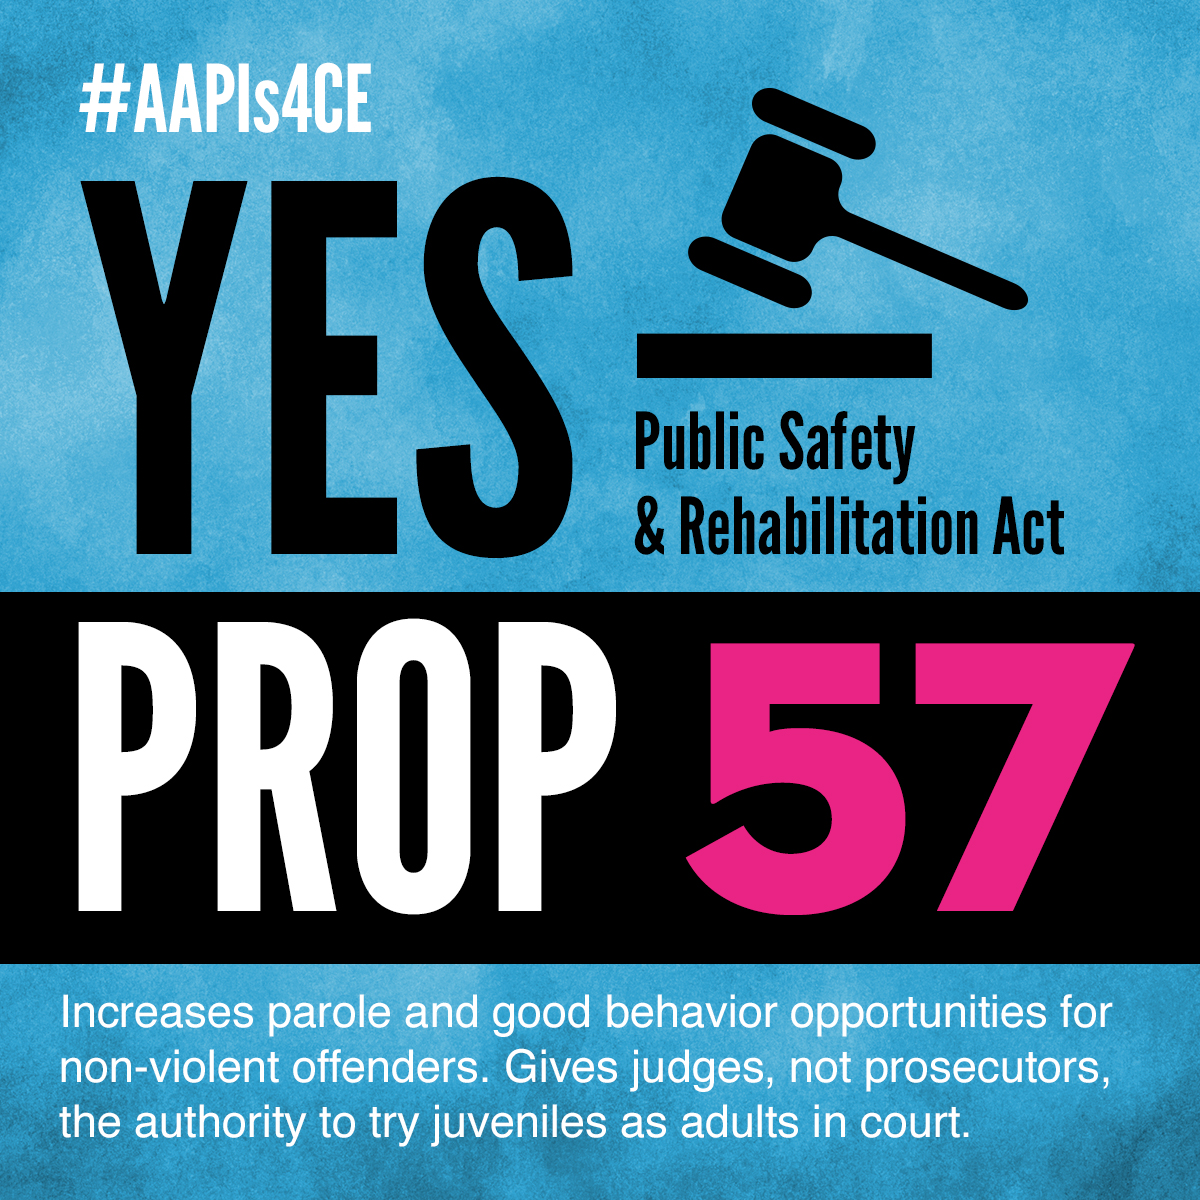 Yes on Proposition 57: Public Safety & Rehabilitation Act